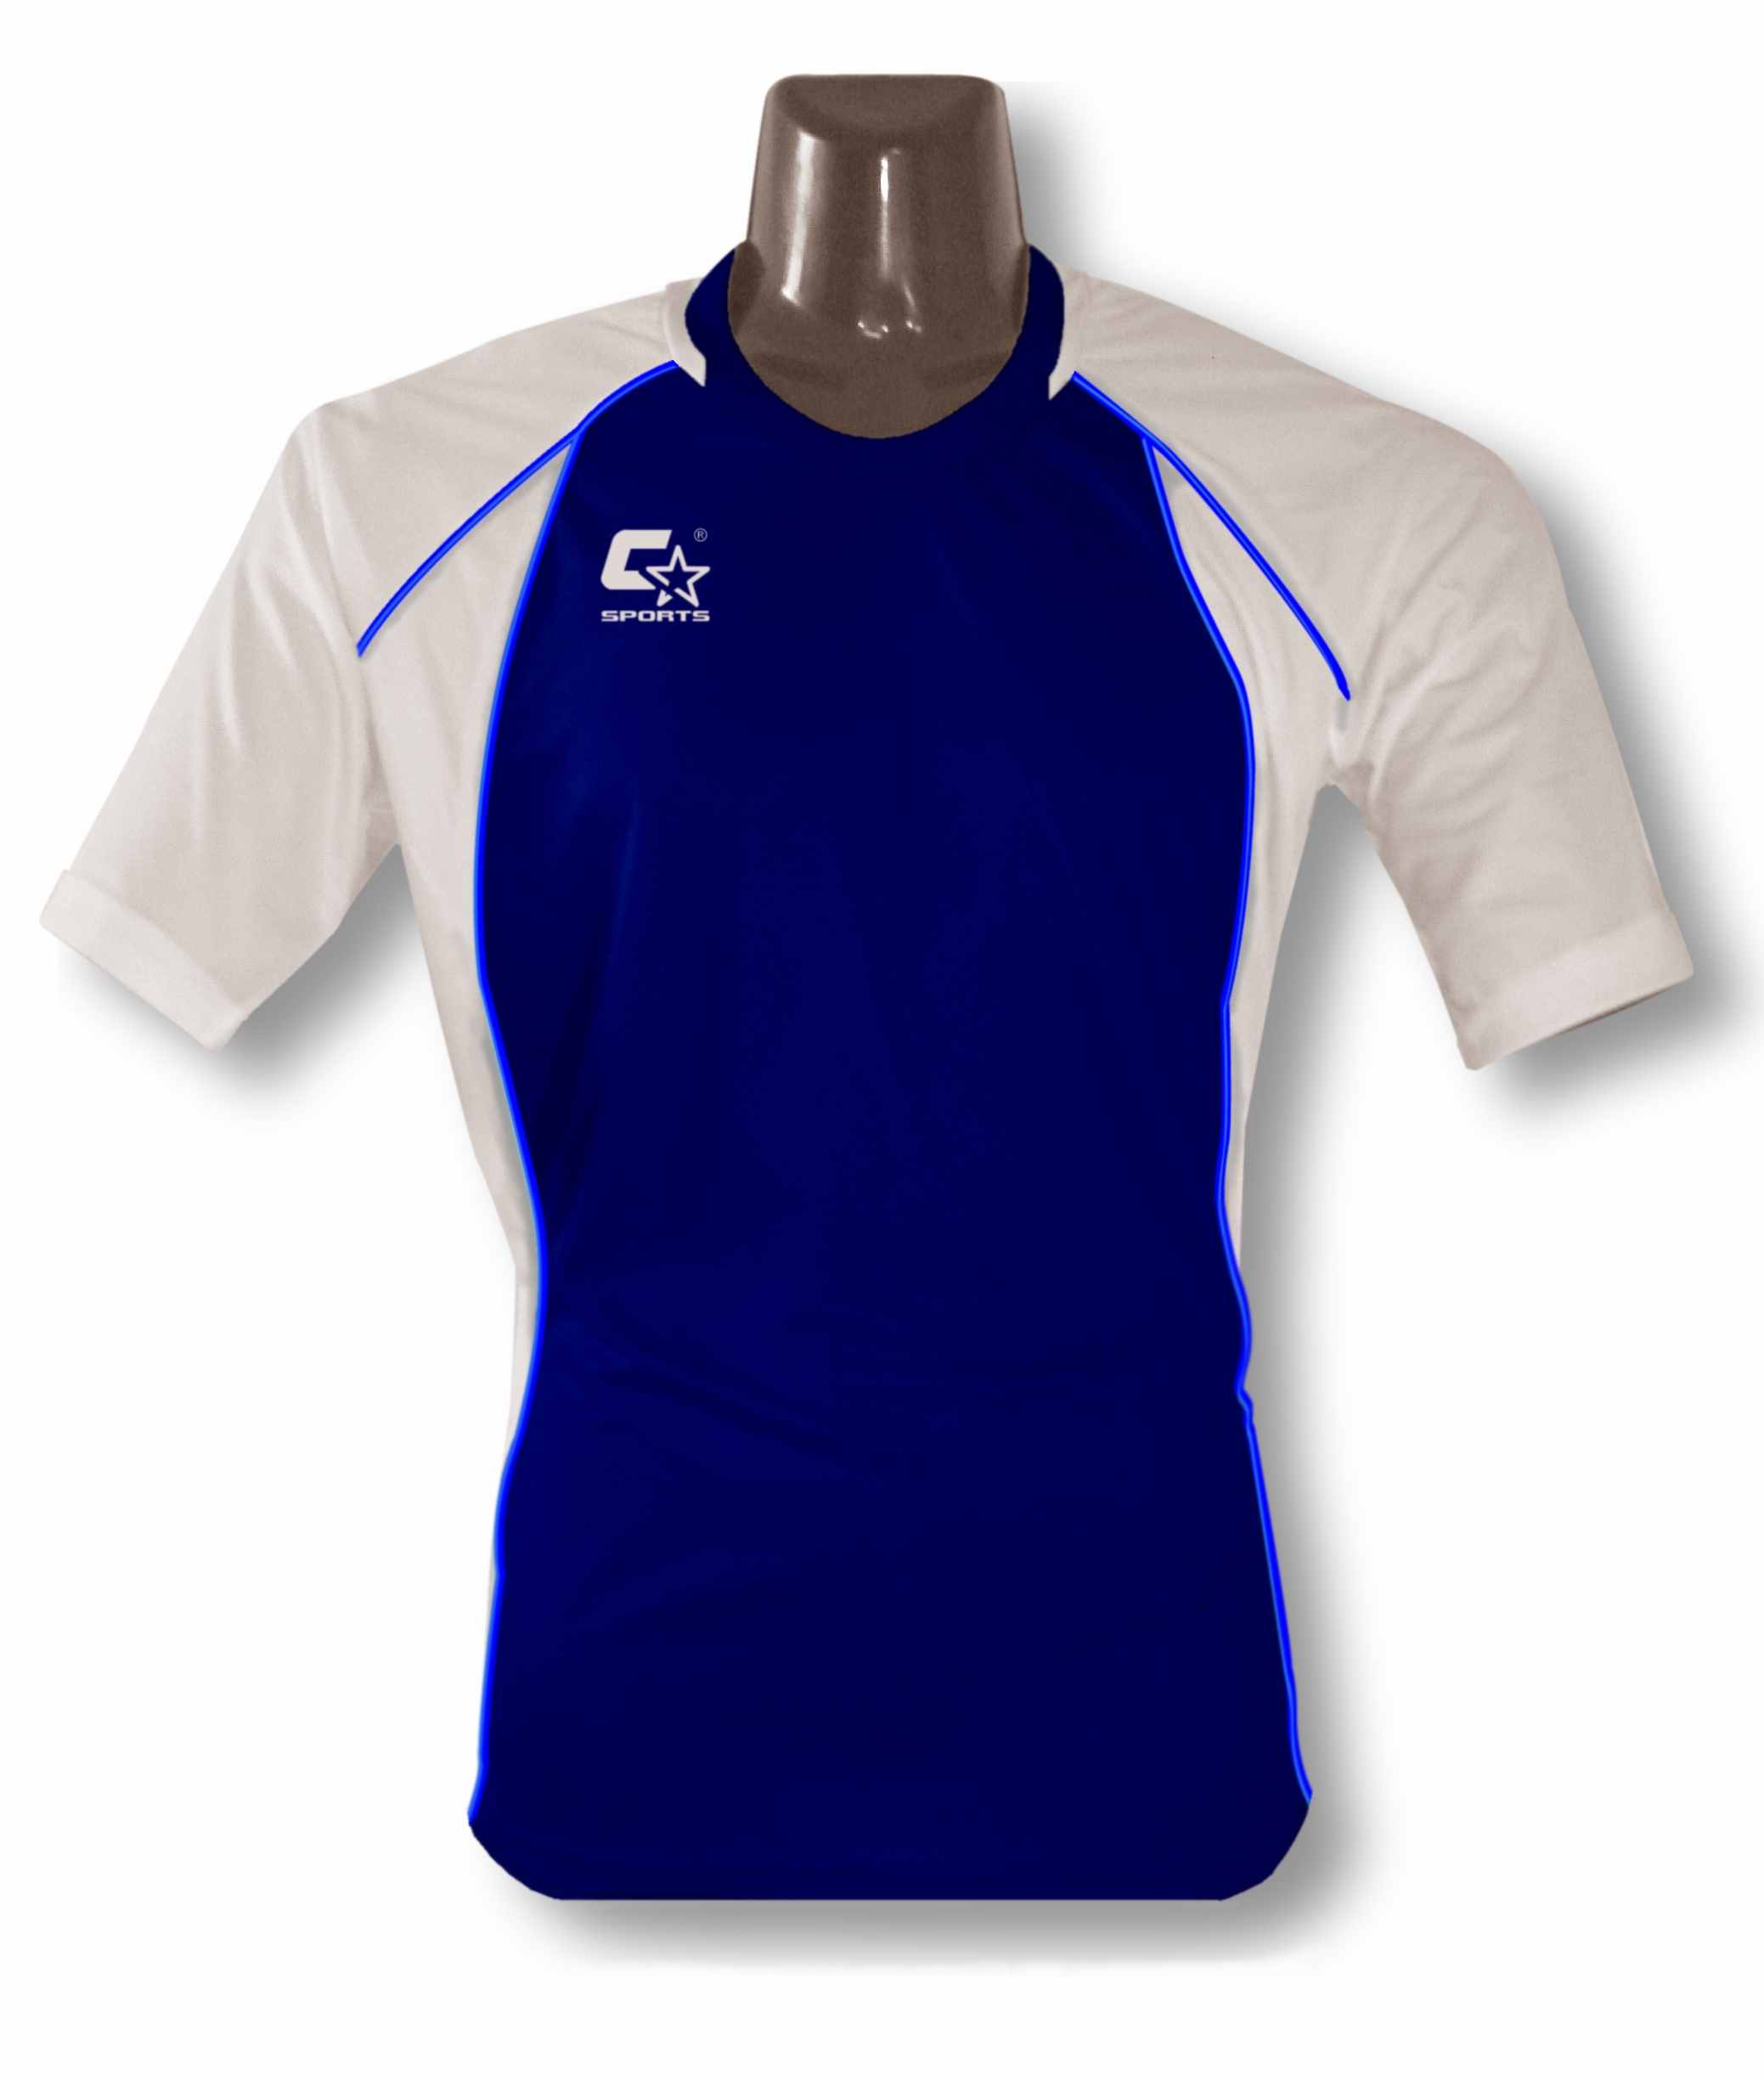 C-Star League 1 Trikot (navy-royal-white) 15,53 €